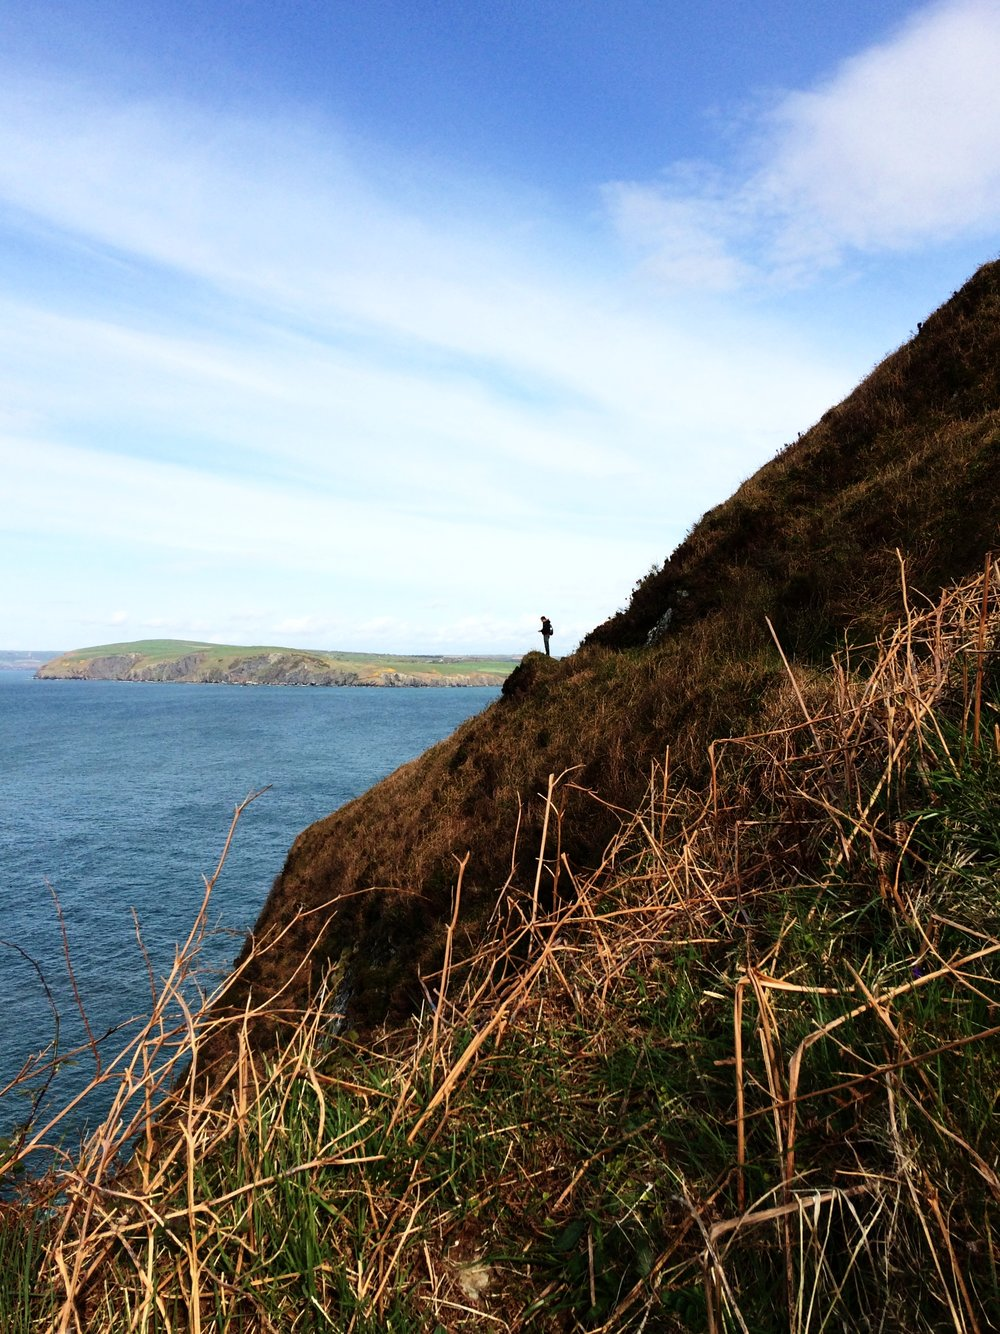 Christian on the Pembrokeshire Coast Path at Dinas Head